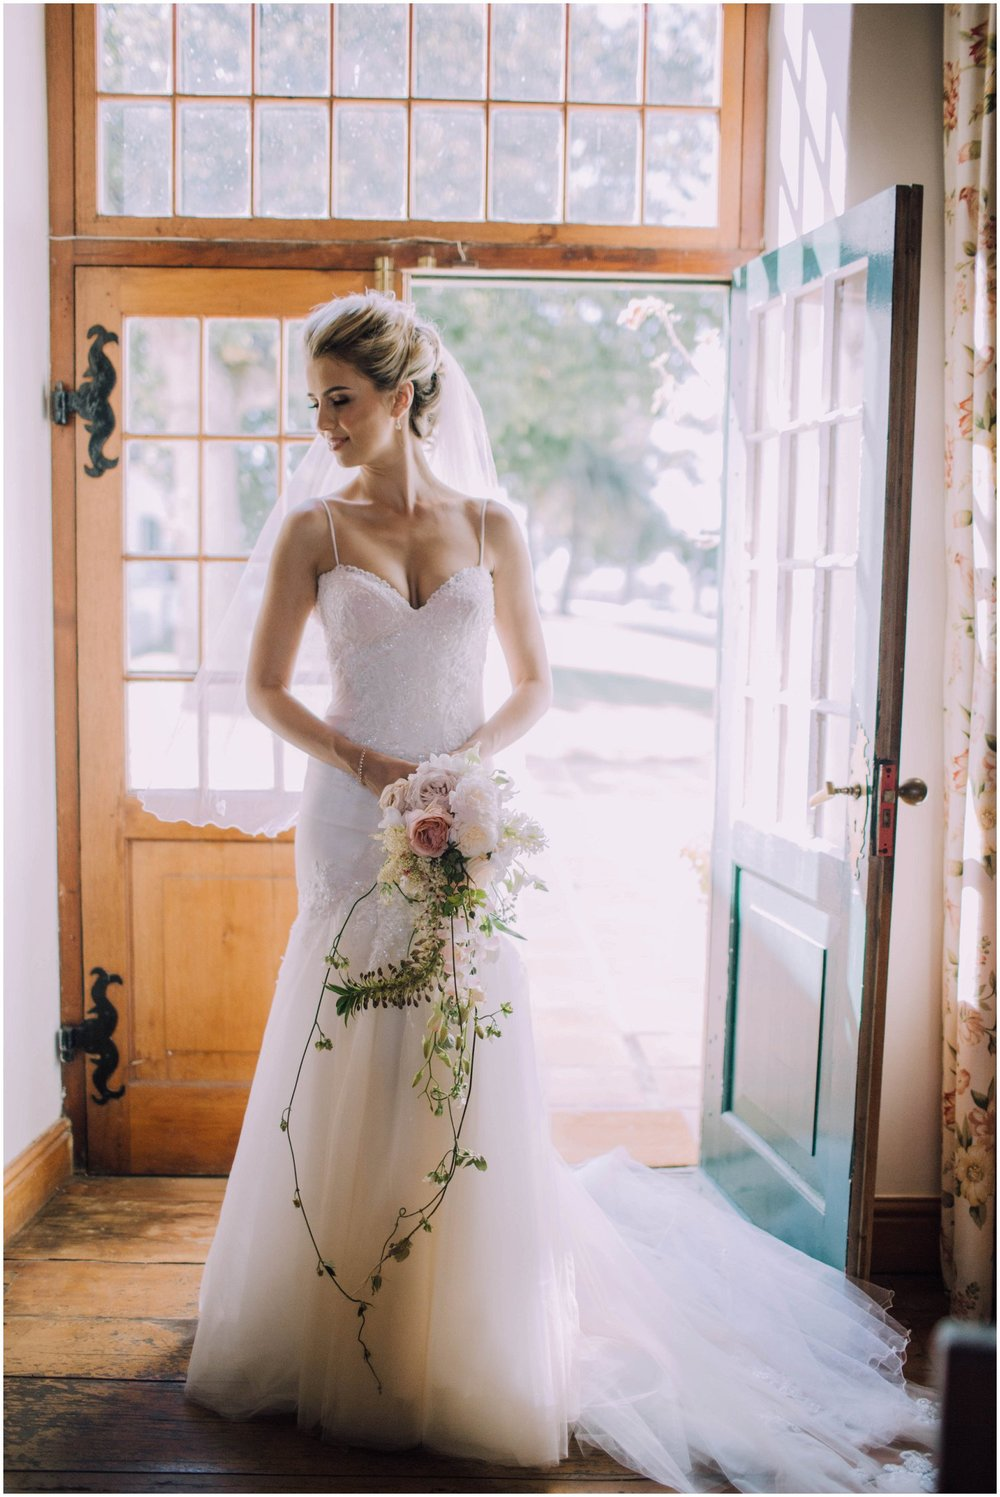 Top Artistic Documentary Wedding Photographer Cape Town South Africa Rue Kruger_0081.jpg